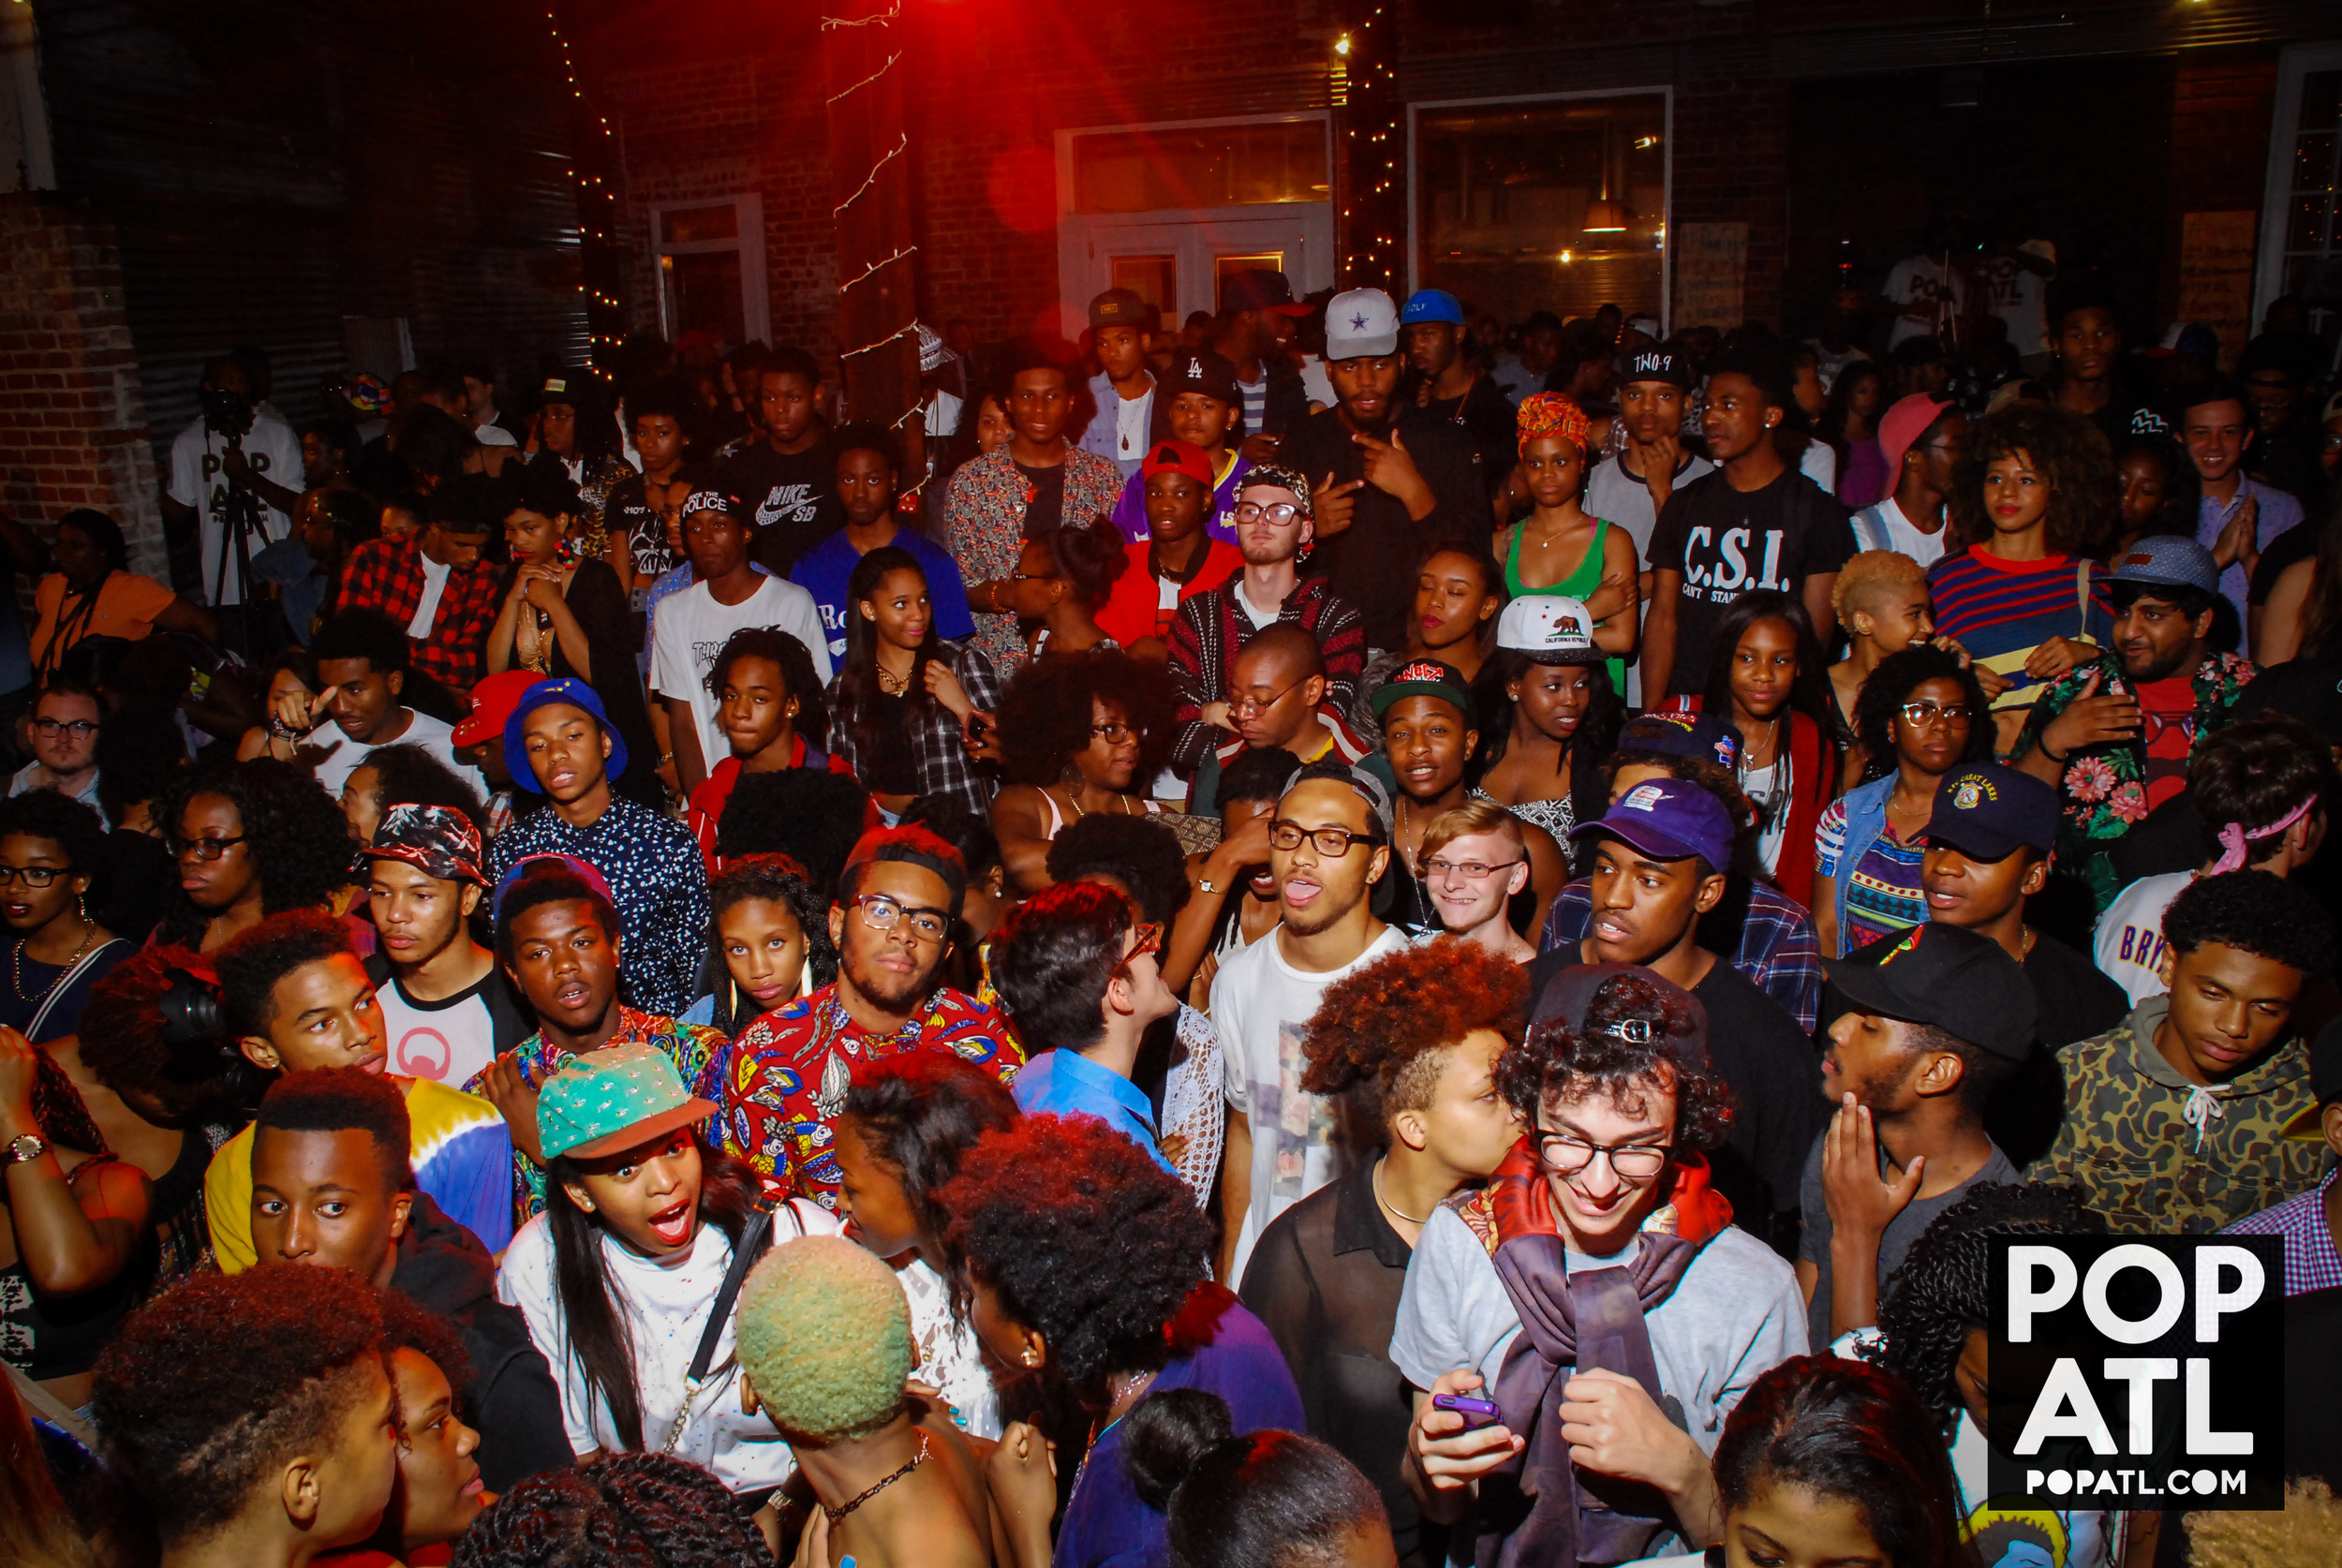 RAURY-RAURFEST-AT-POP-ATL-95.jpg